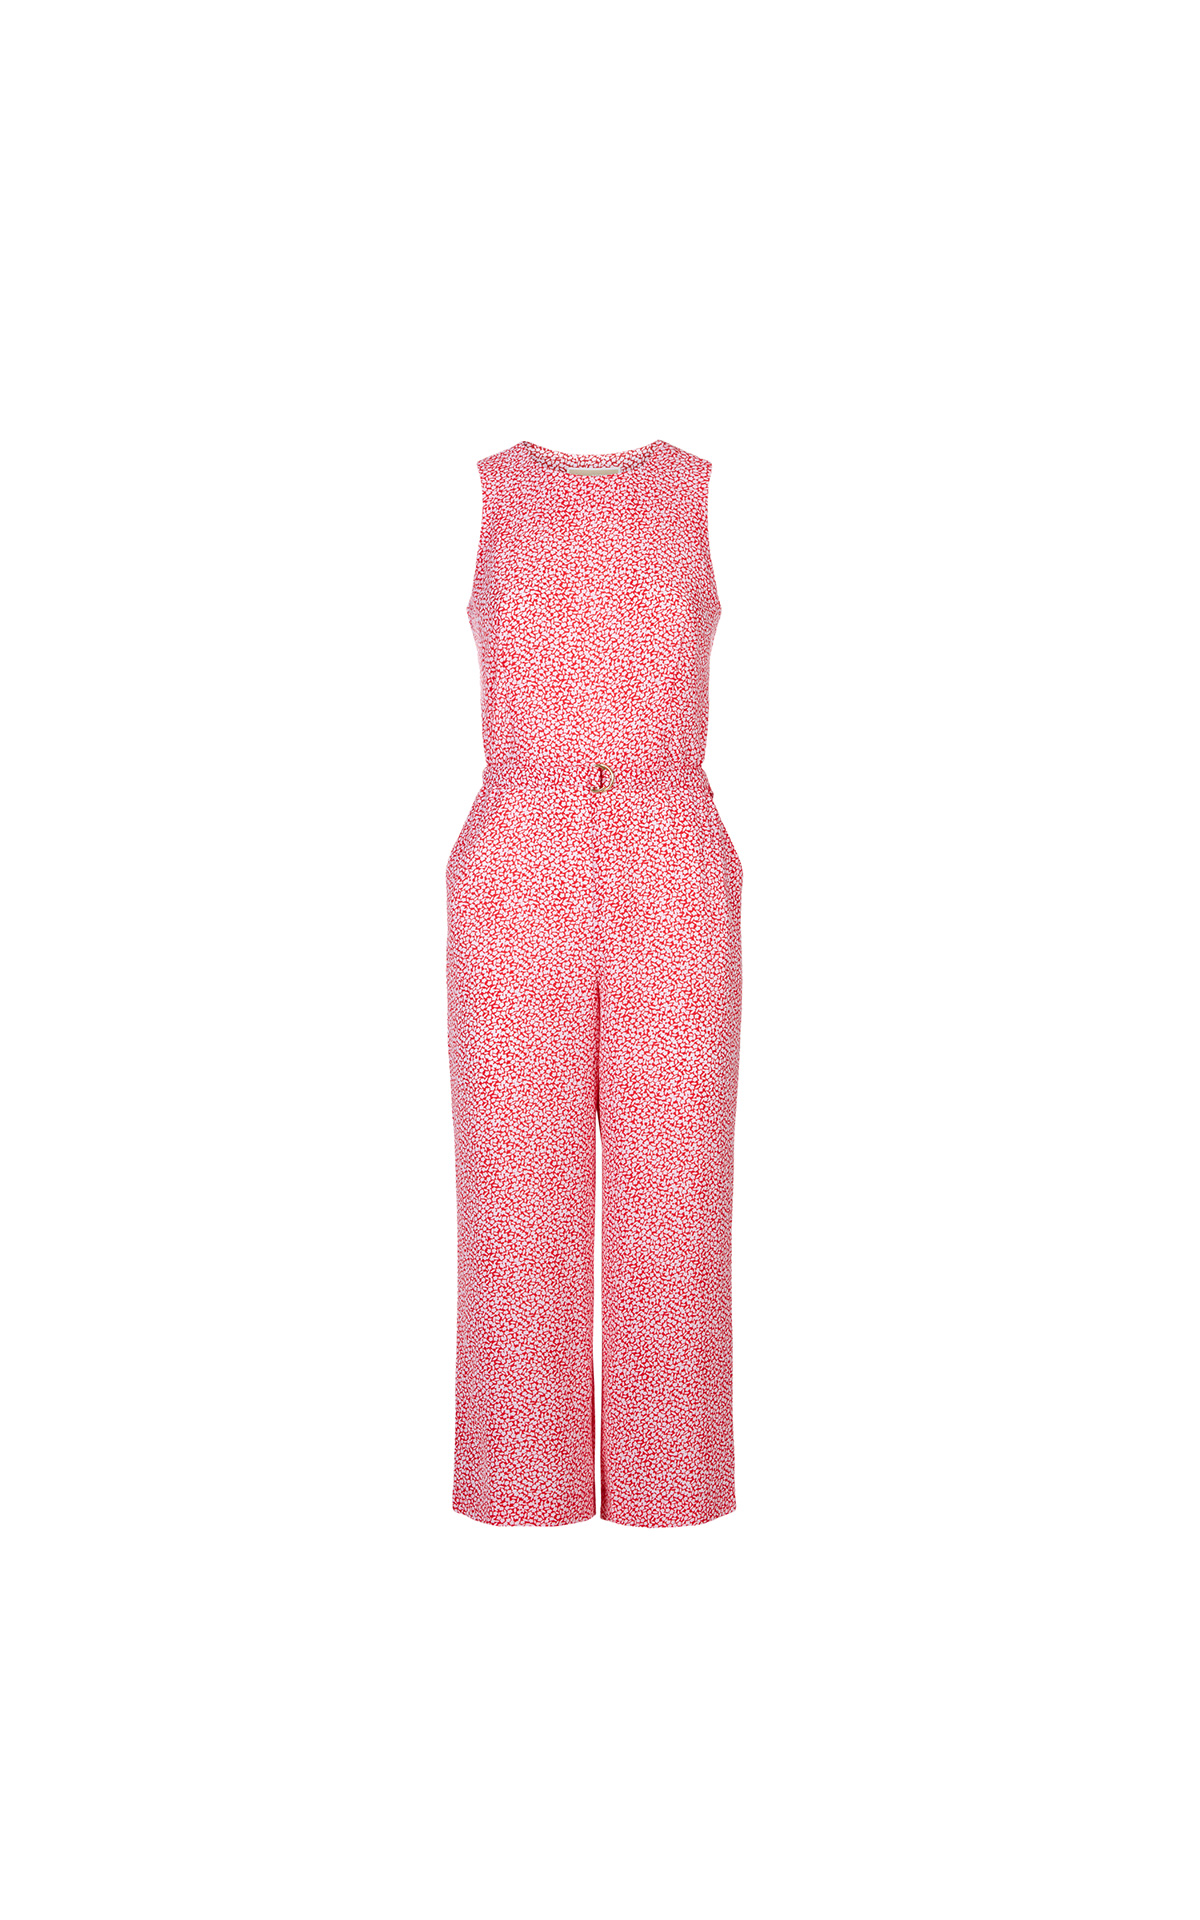 Michael Kors D ring jumpsuit in coral at The Bicester Village Shopping Collection